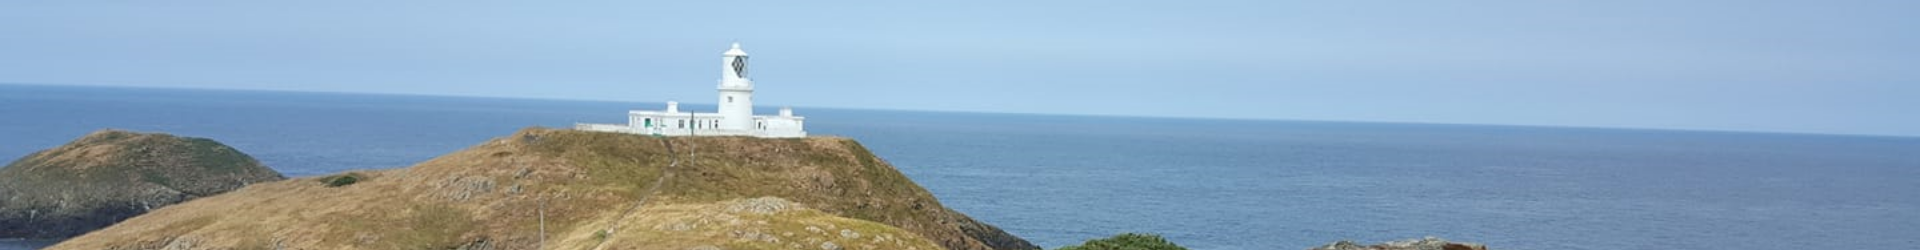 A landscape image of the sea with a lighthouse